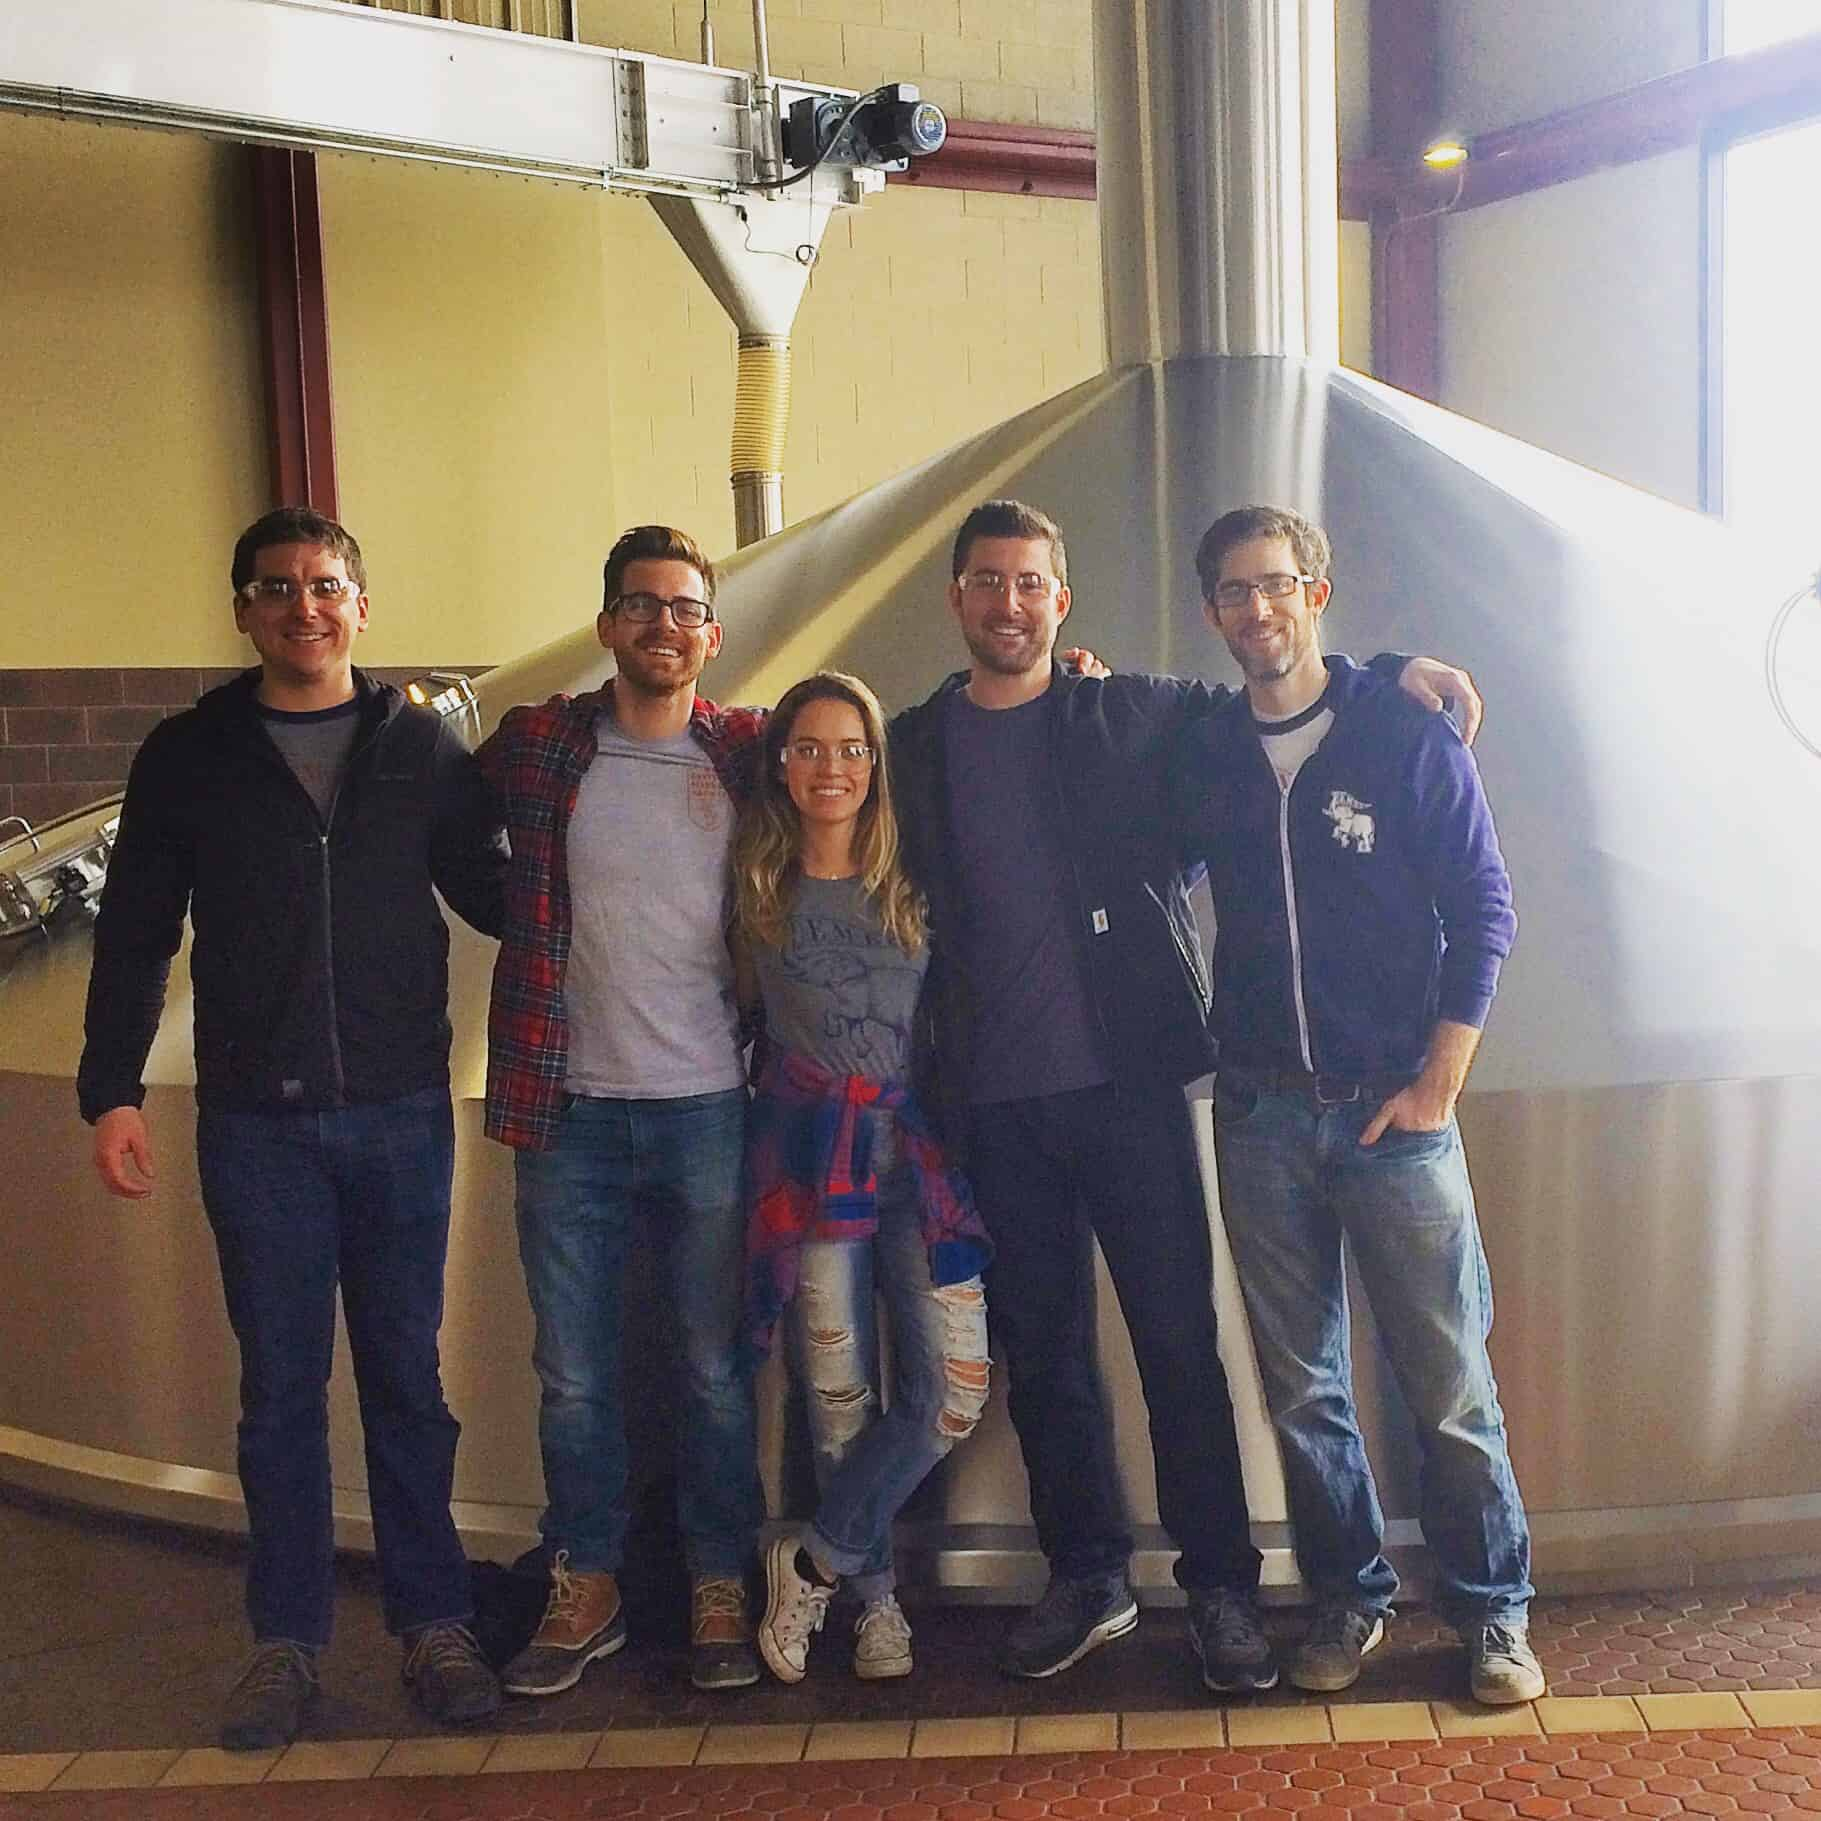 Brew Tour: Eastern Market Brewing Co. - The Awesome Mitten